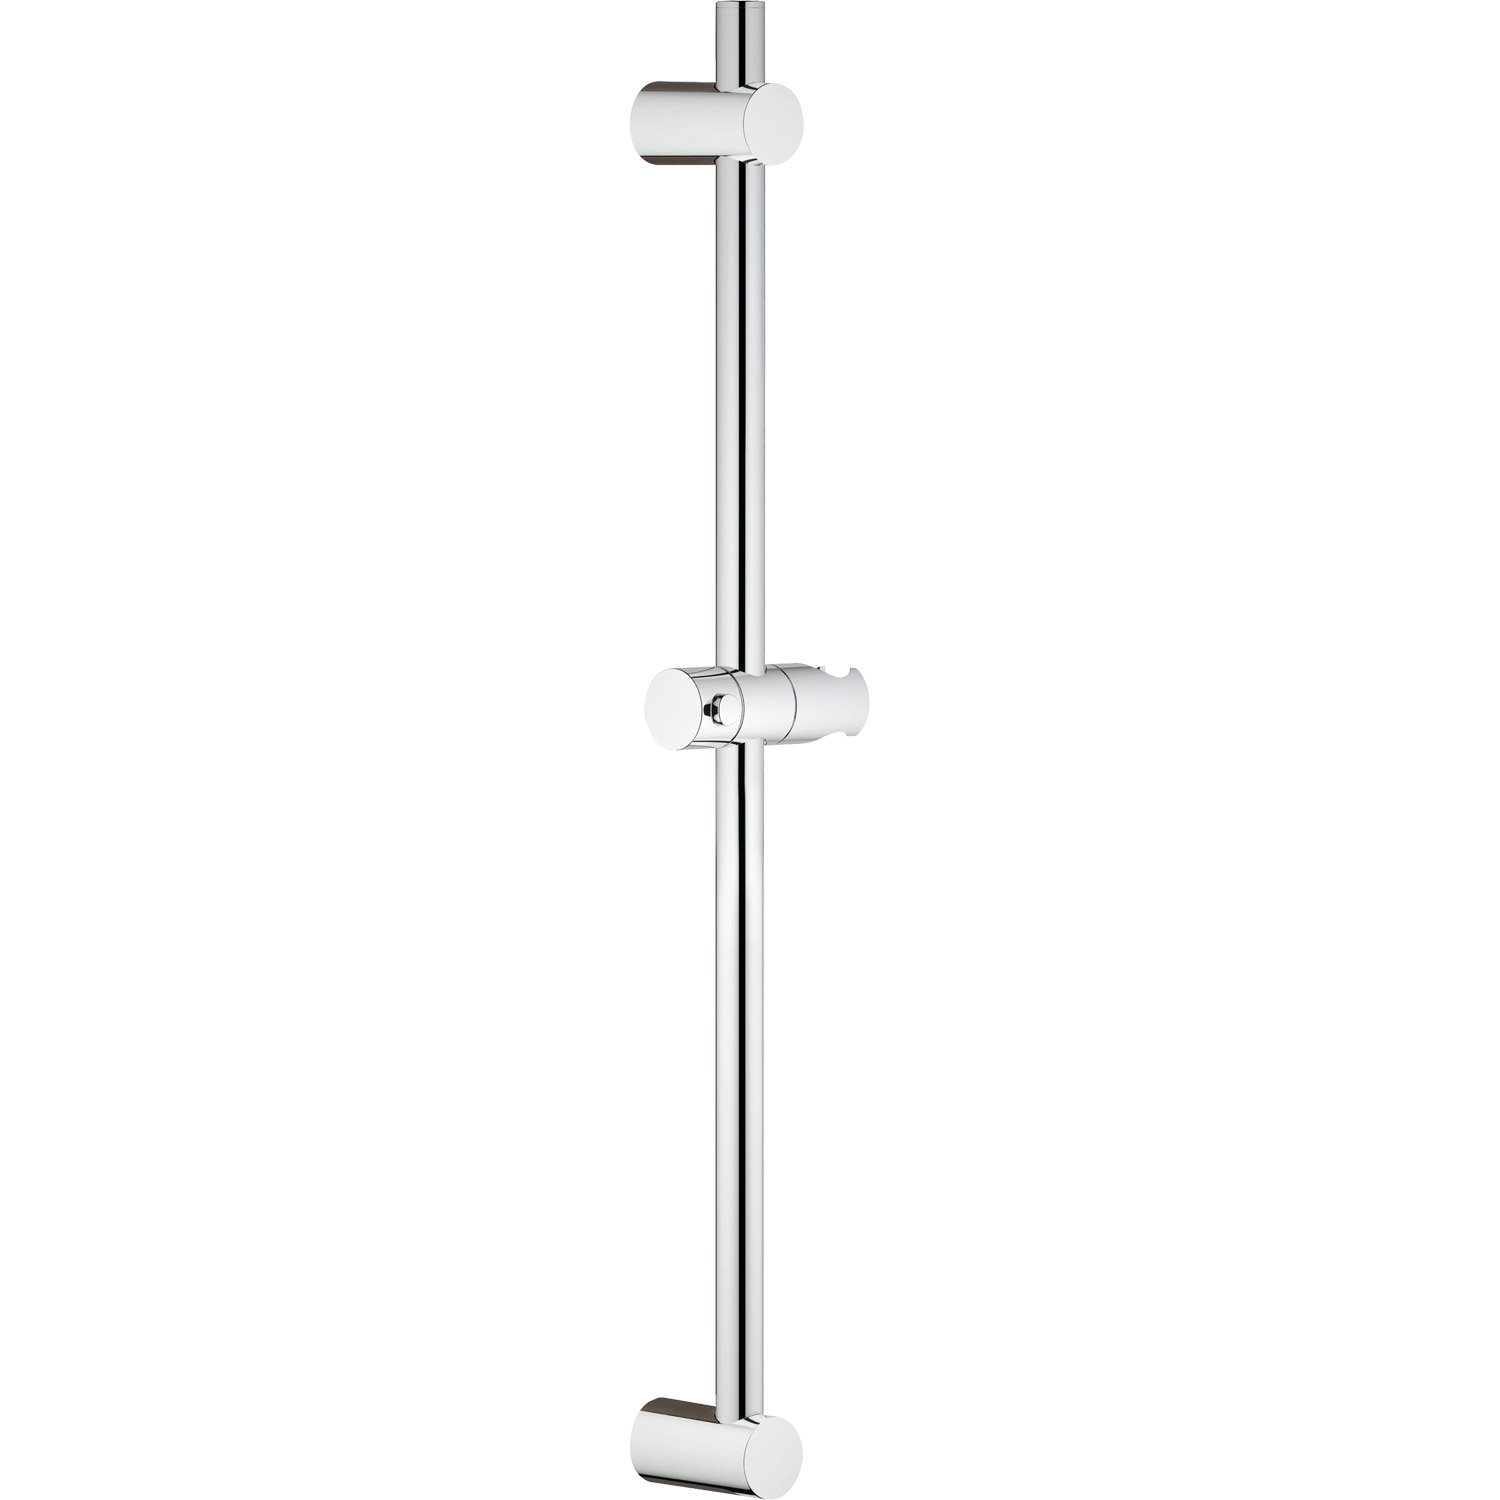 Barre de douche chrome grohe vitalio start leroy merlin - Demonter barre de douche ...